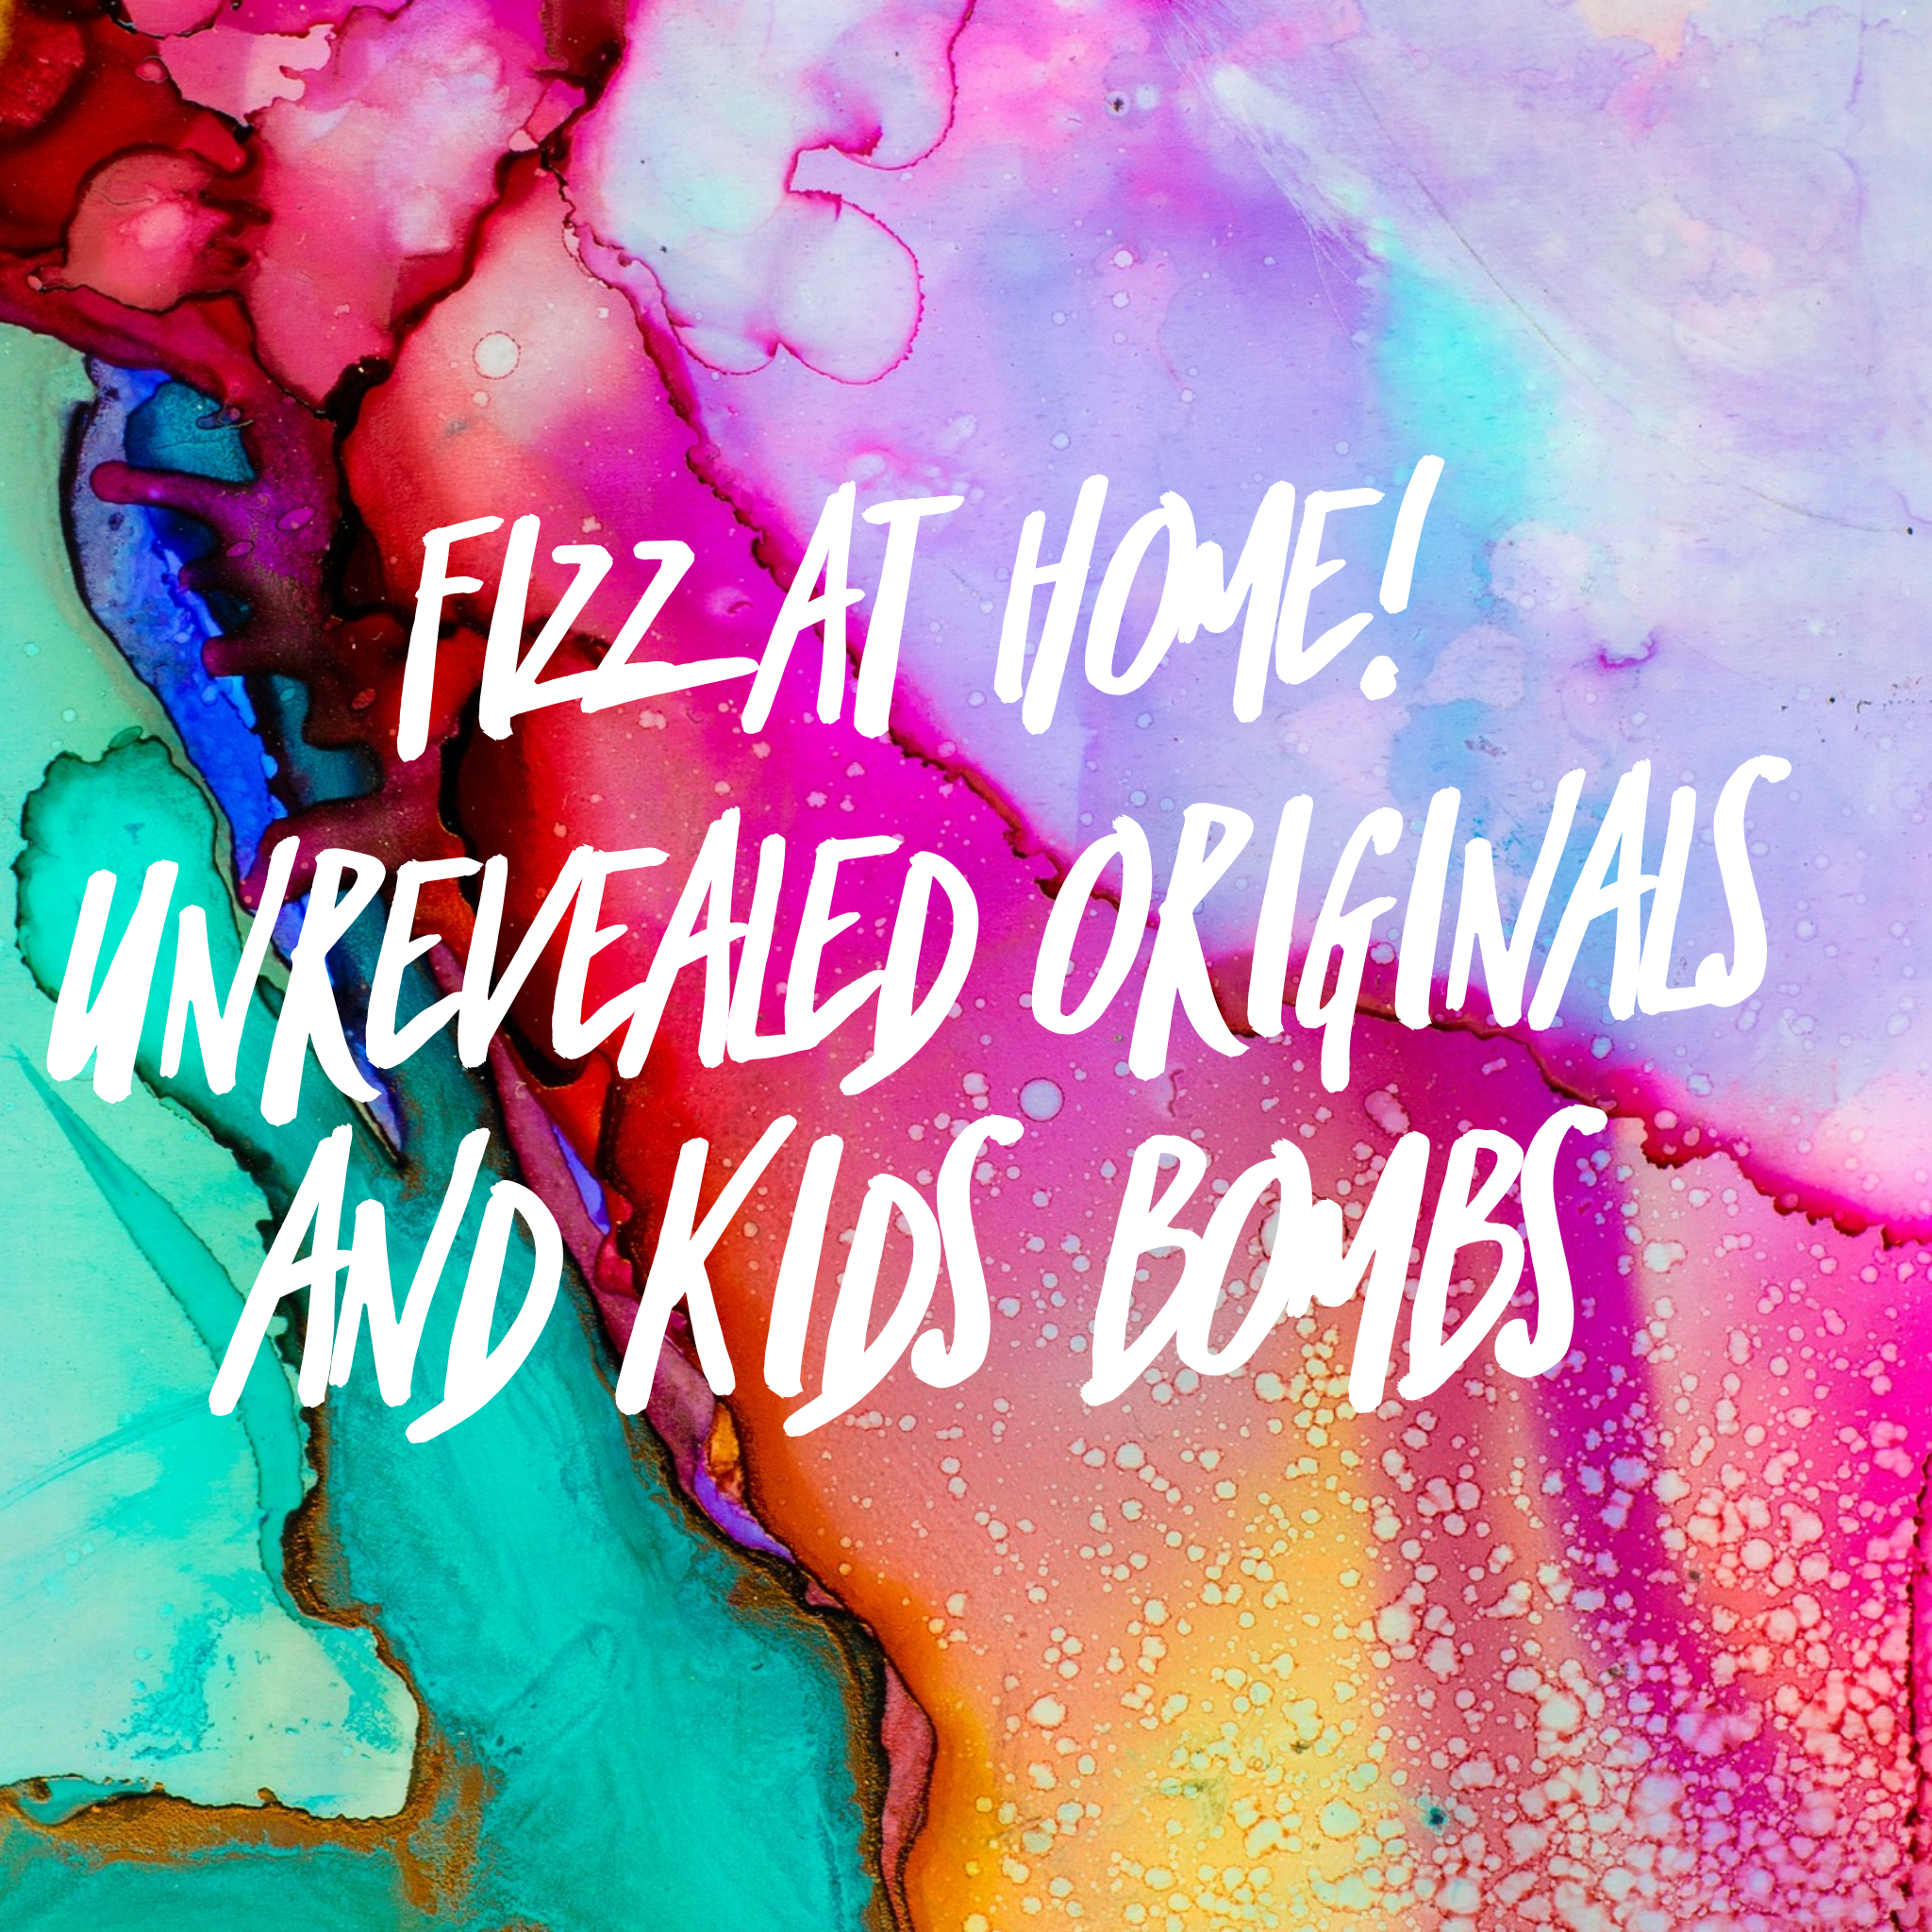 Fizz at Home! Unrevealed Ring Bombs